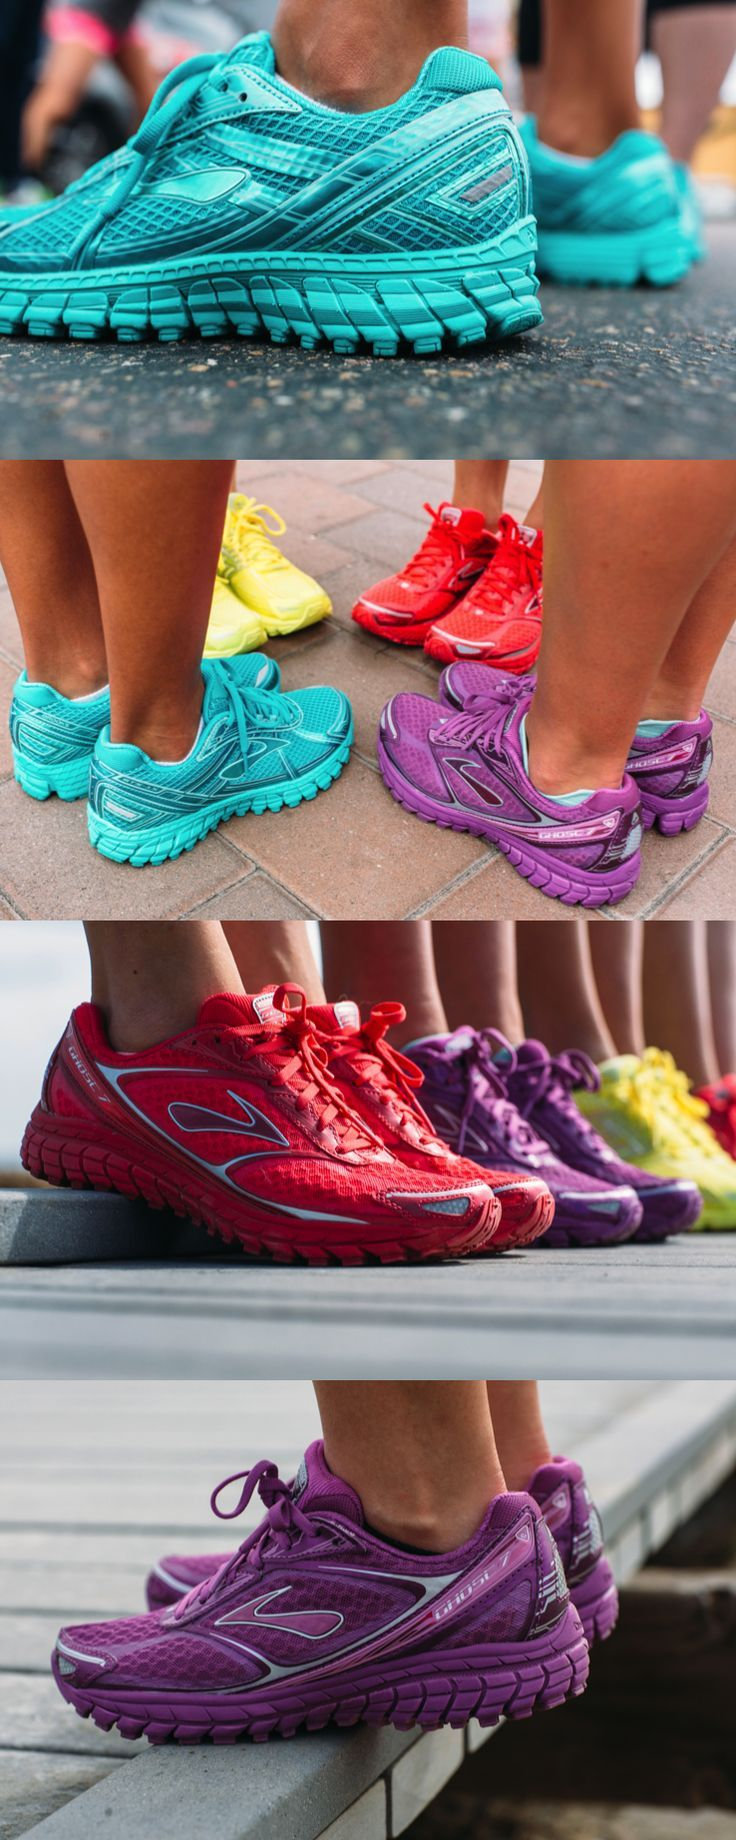 Express yourself in color! Get the brightest Brooks shoes at http://FinishLine.com.